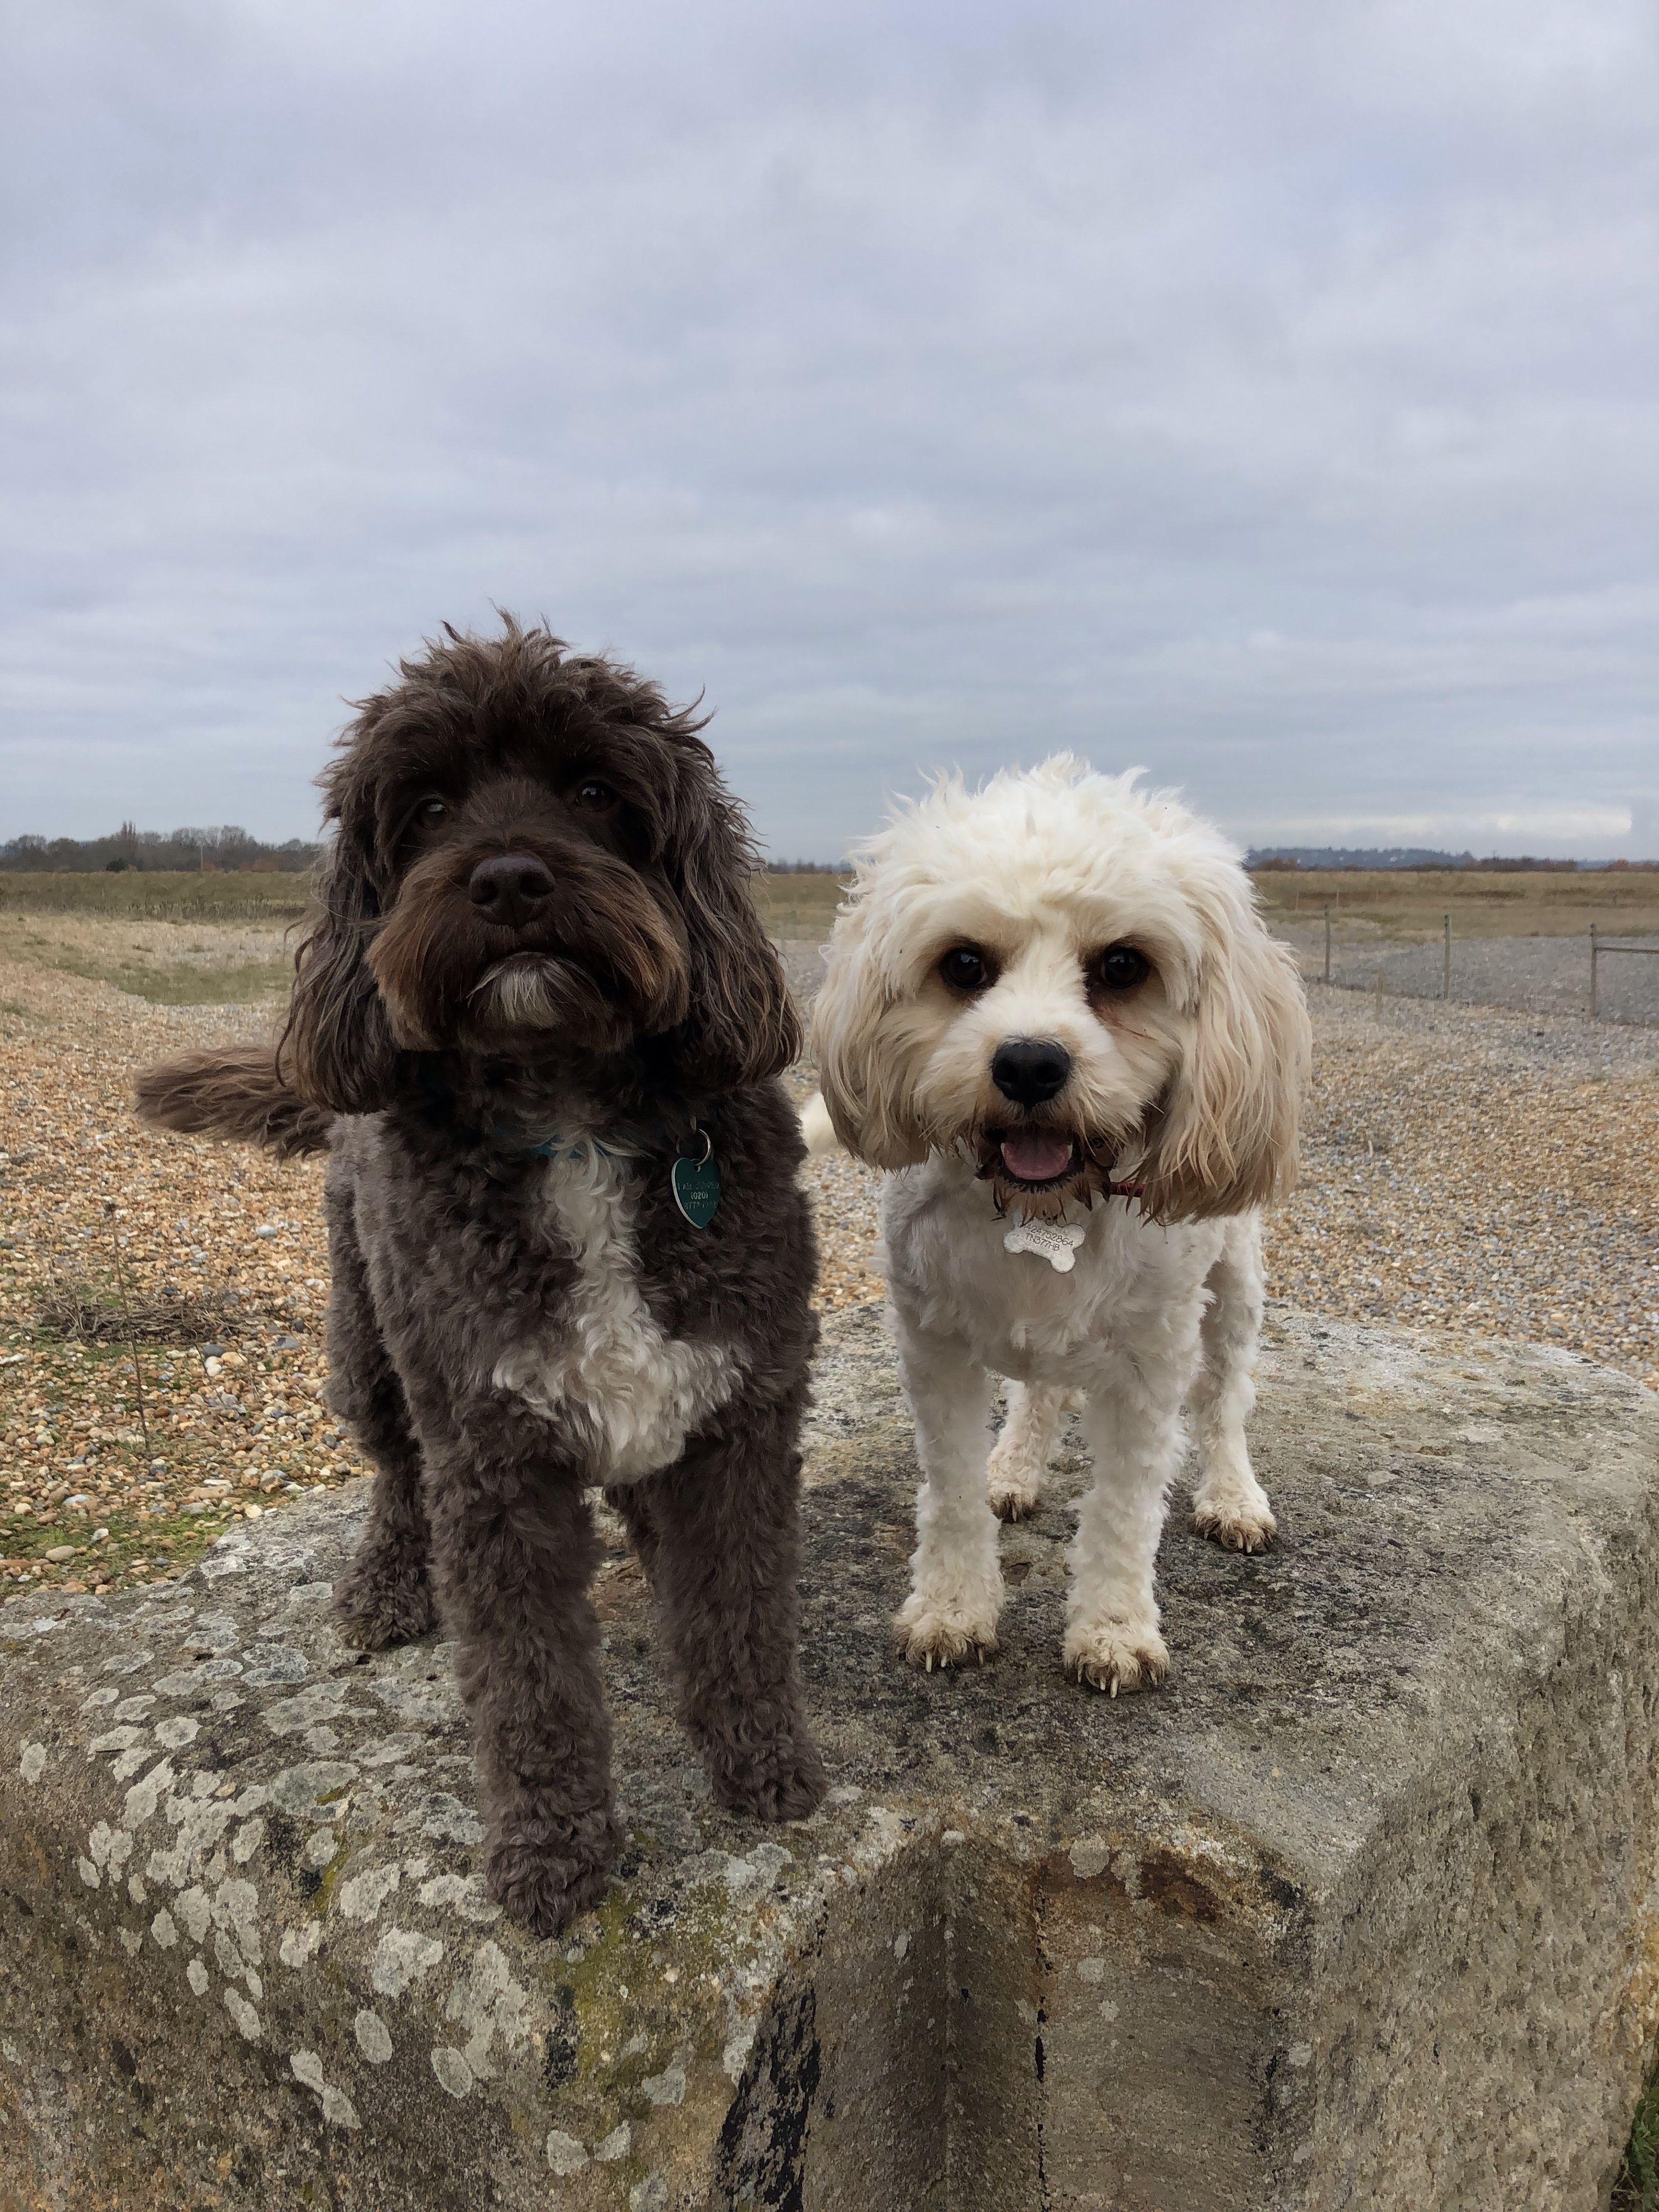 Experienced Dog Walking Doggy Daycare Local Pet Care Services Friendly Reliable Affordable And Fully Insured Check Dog Walking Services Dog Walking Dogs